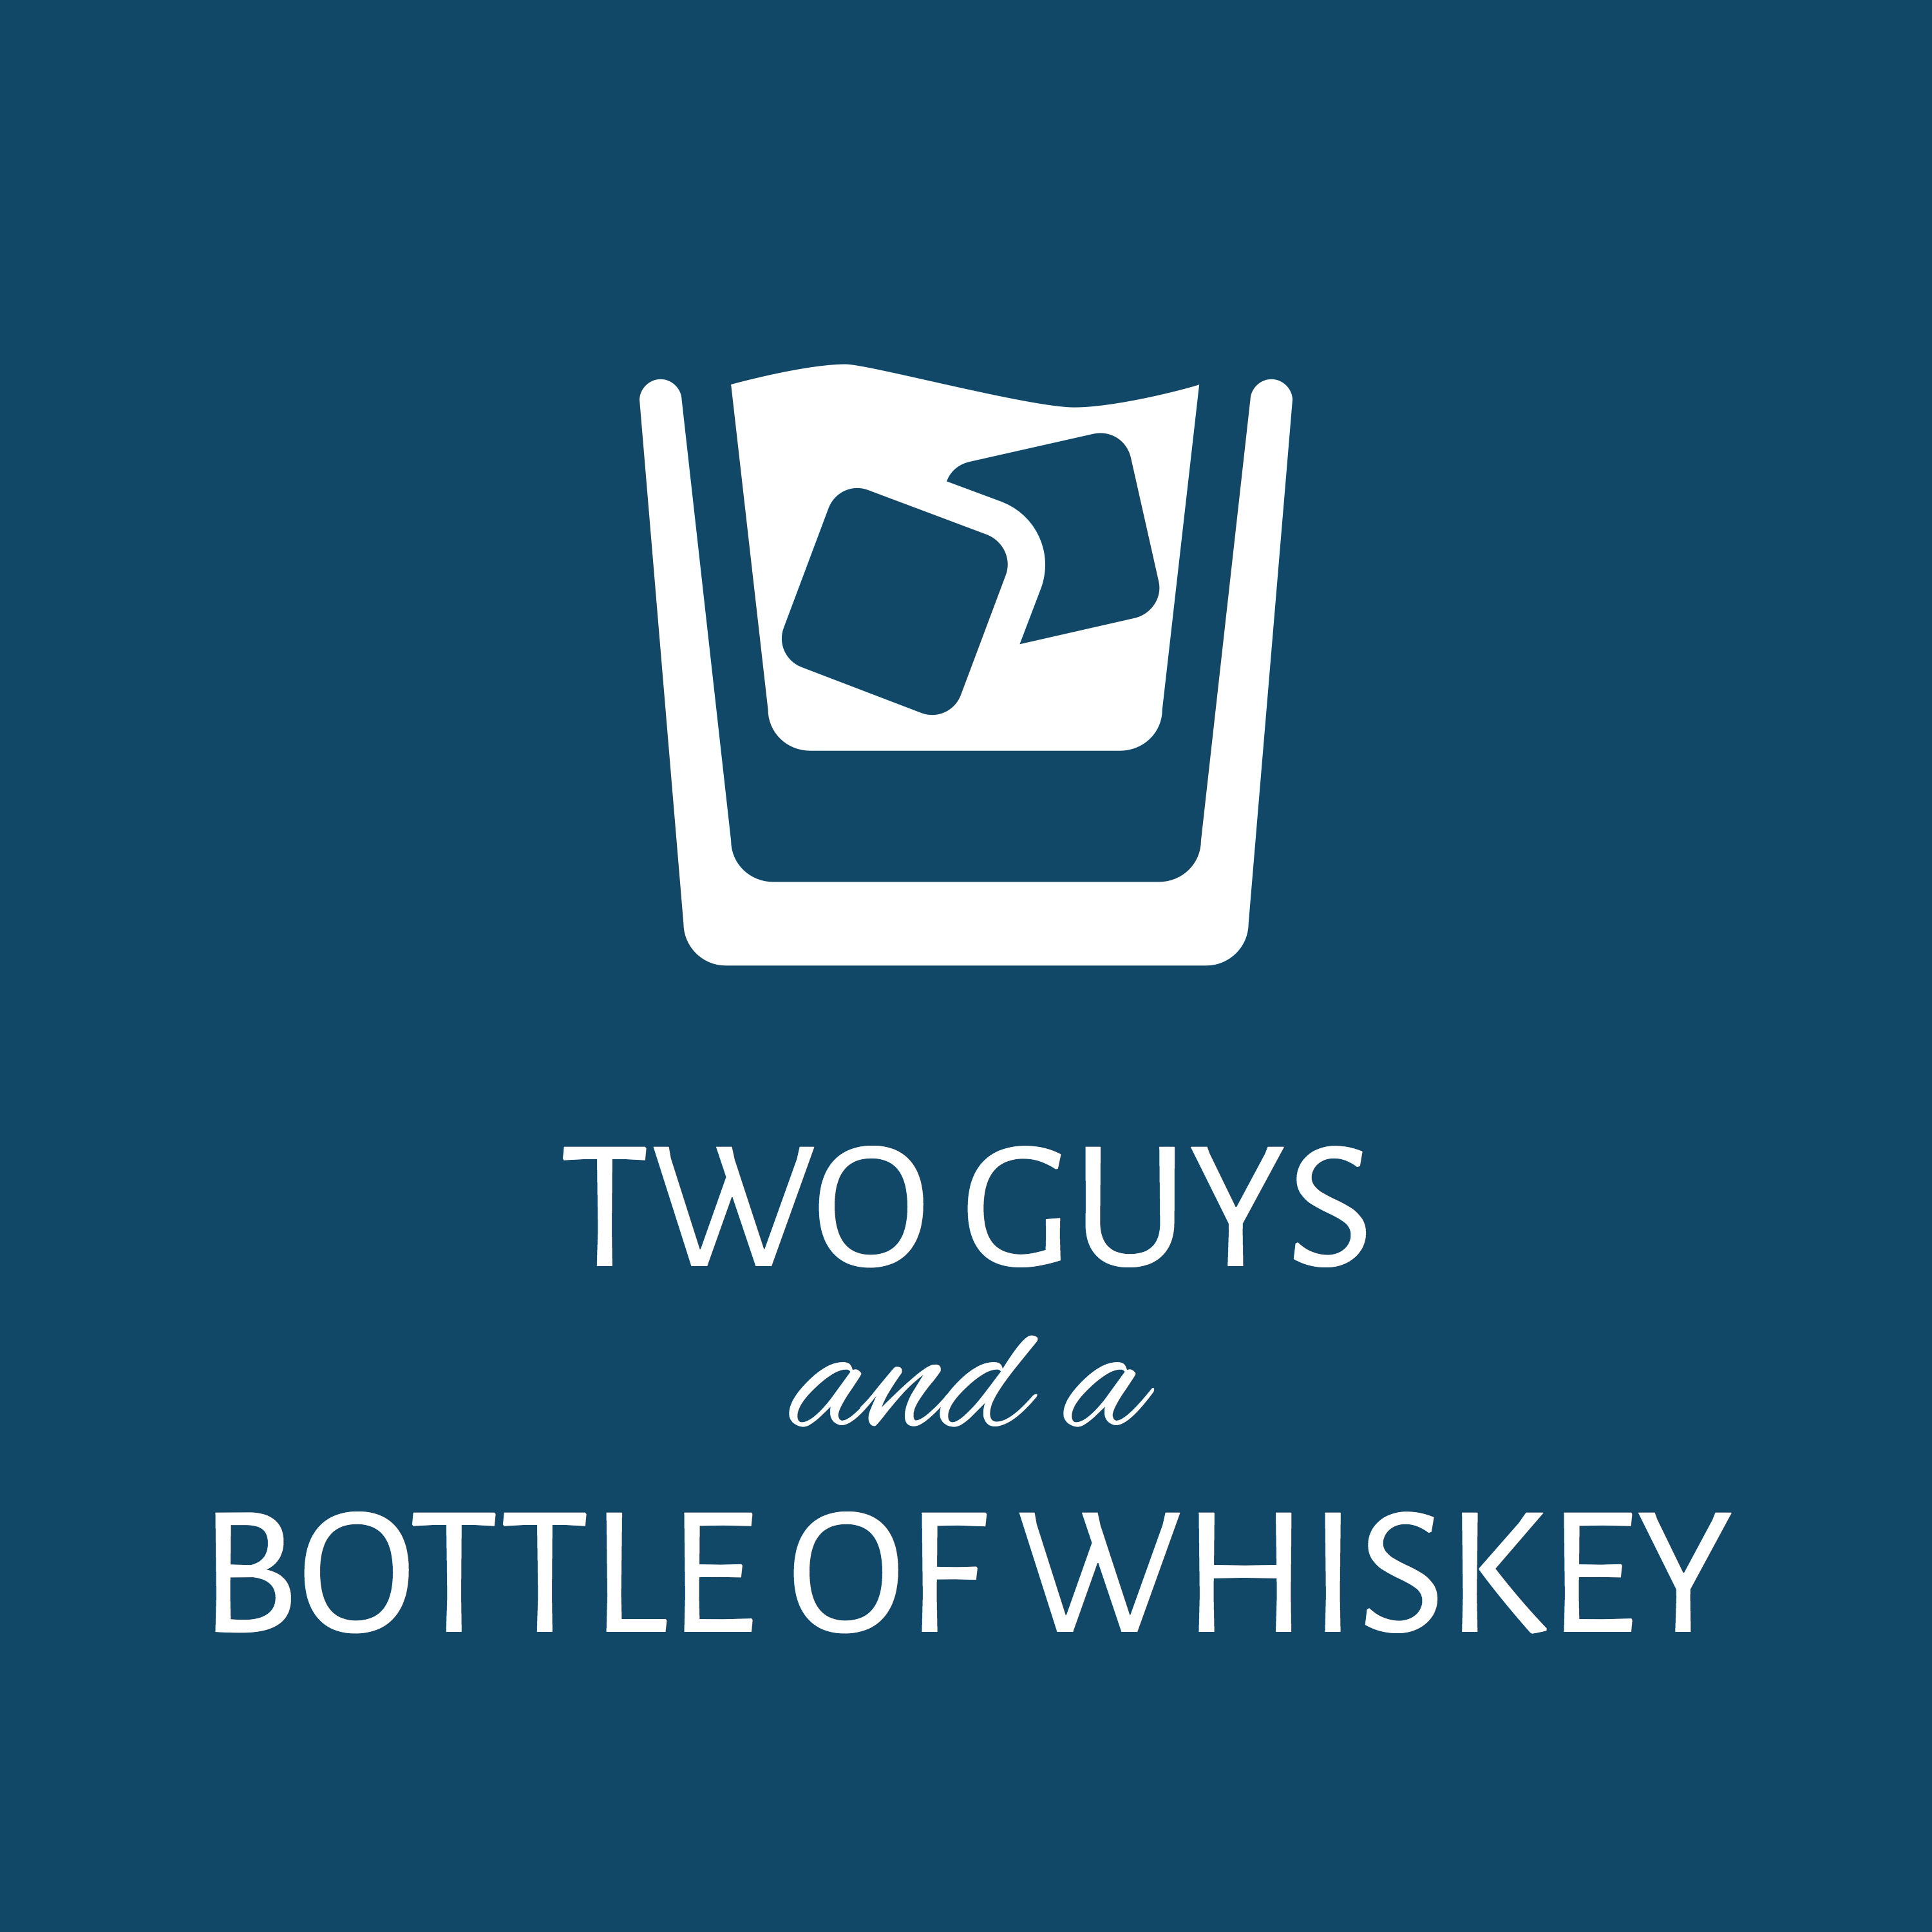 <![CDATA[Two Guys and a Bottle of Whiskey]]>